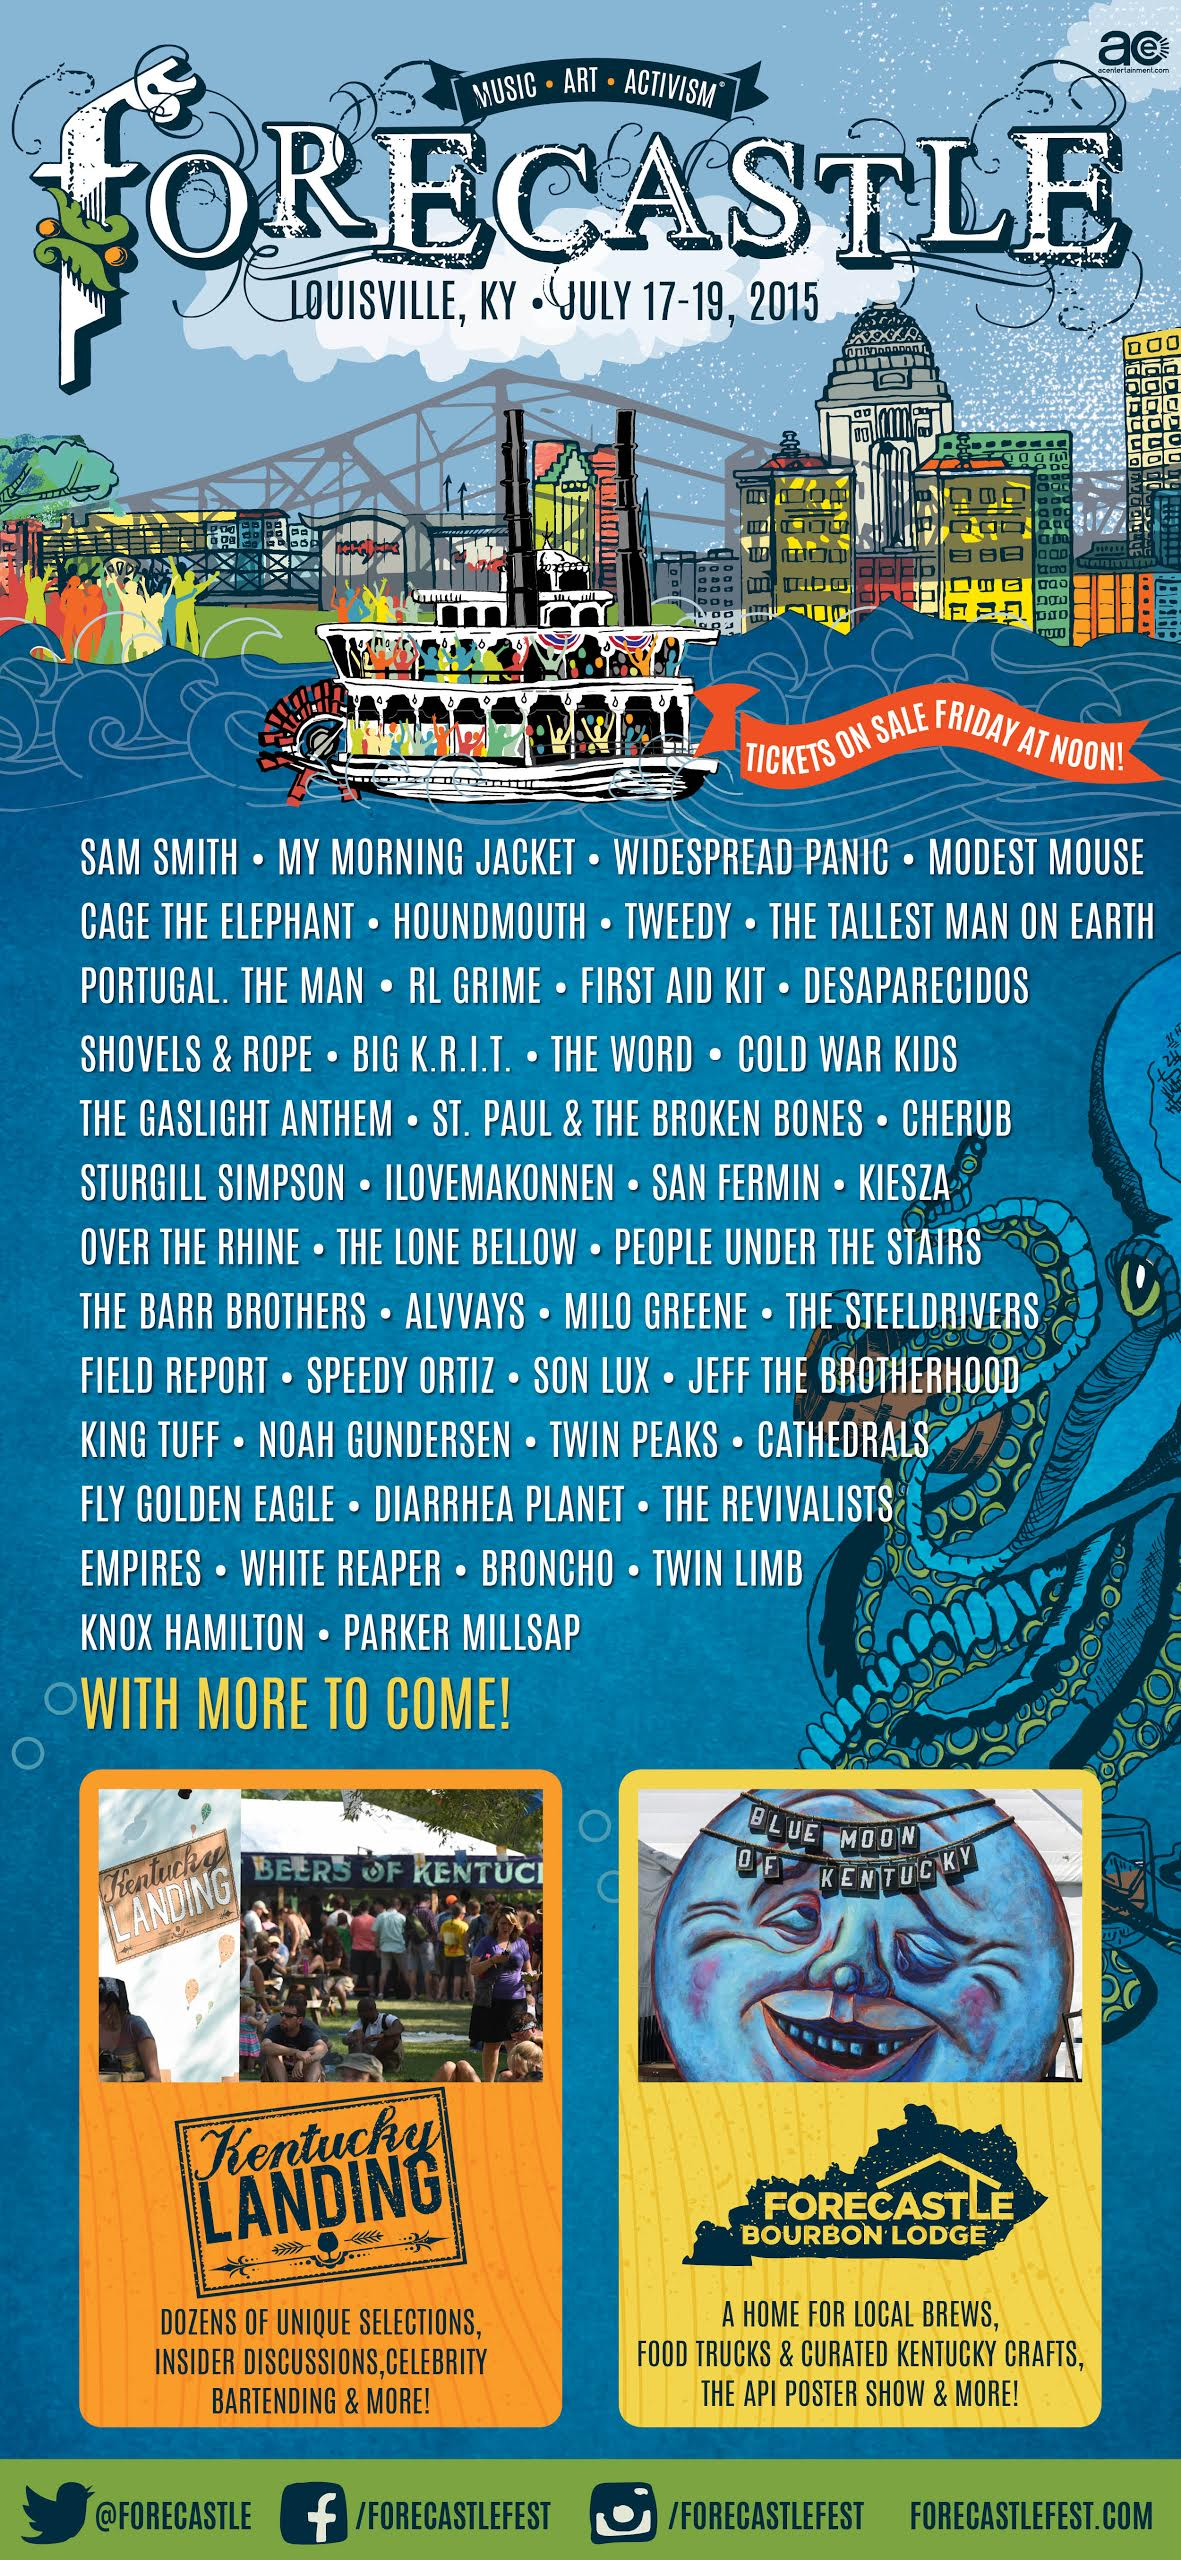 forecastle The Forecastle Festival: Getting Real Lucky in Kentucky